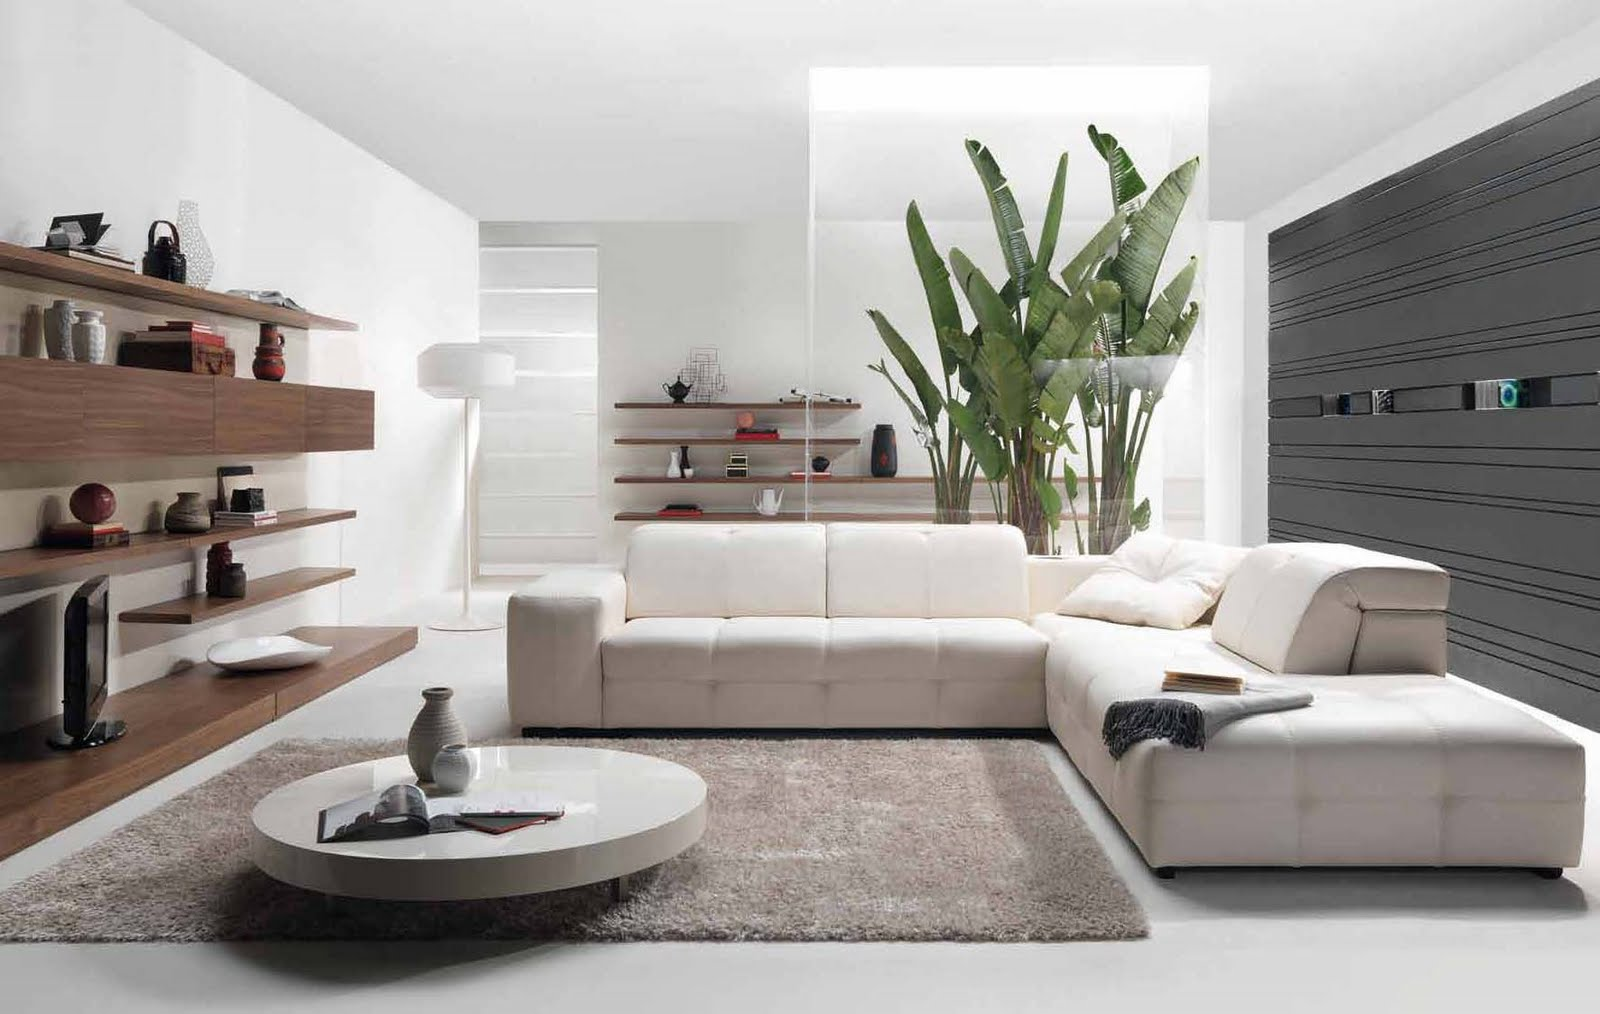 Future house design modern living room interior design styles 2010 by natuzzi - Interior design styles ...